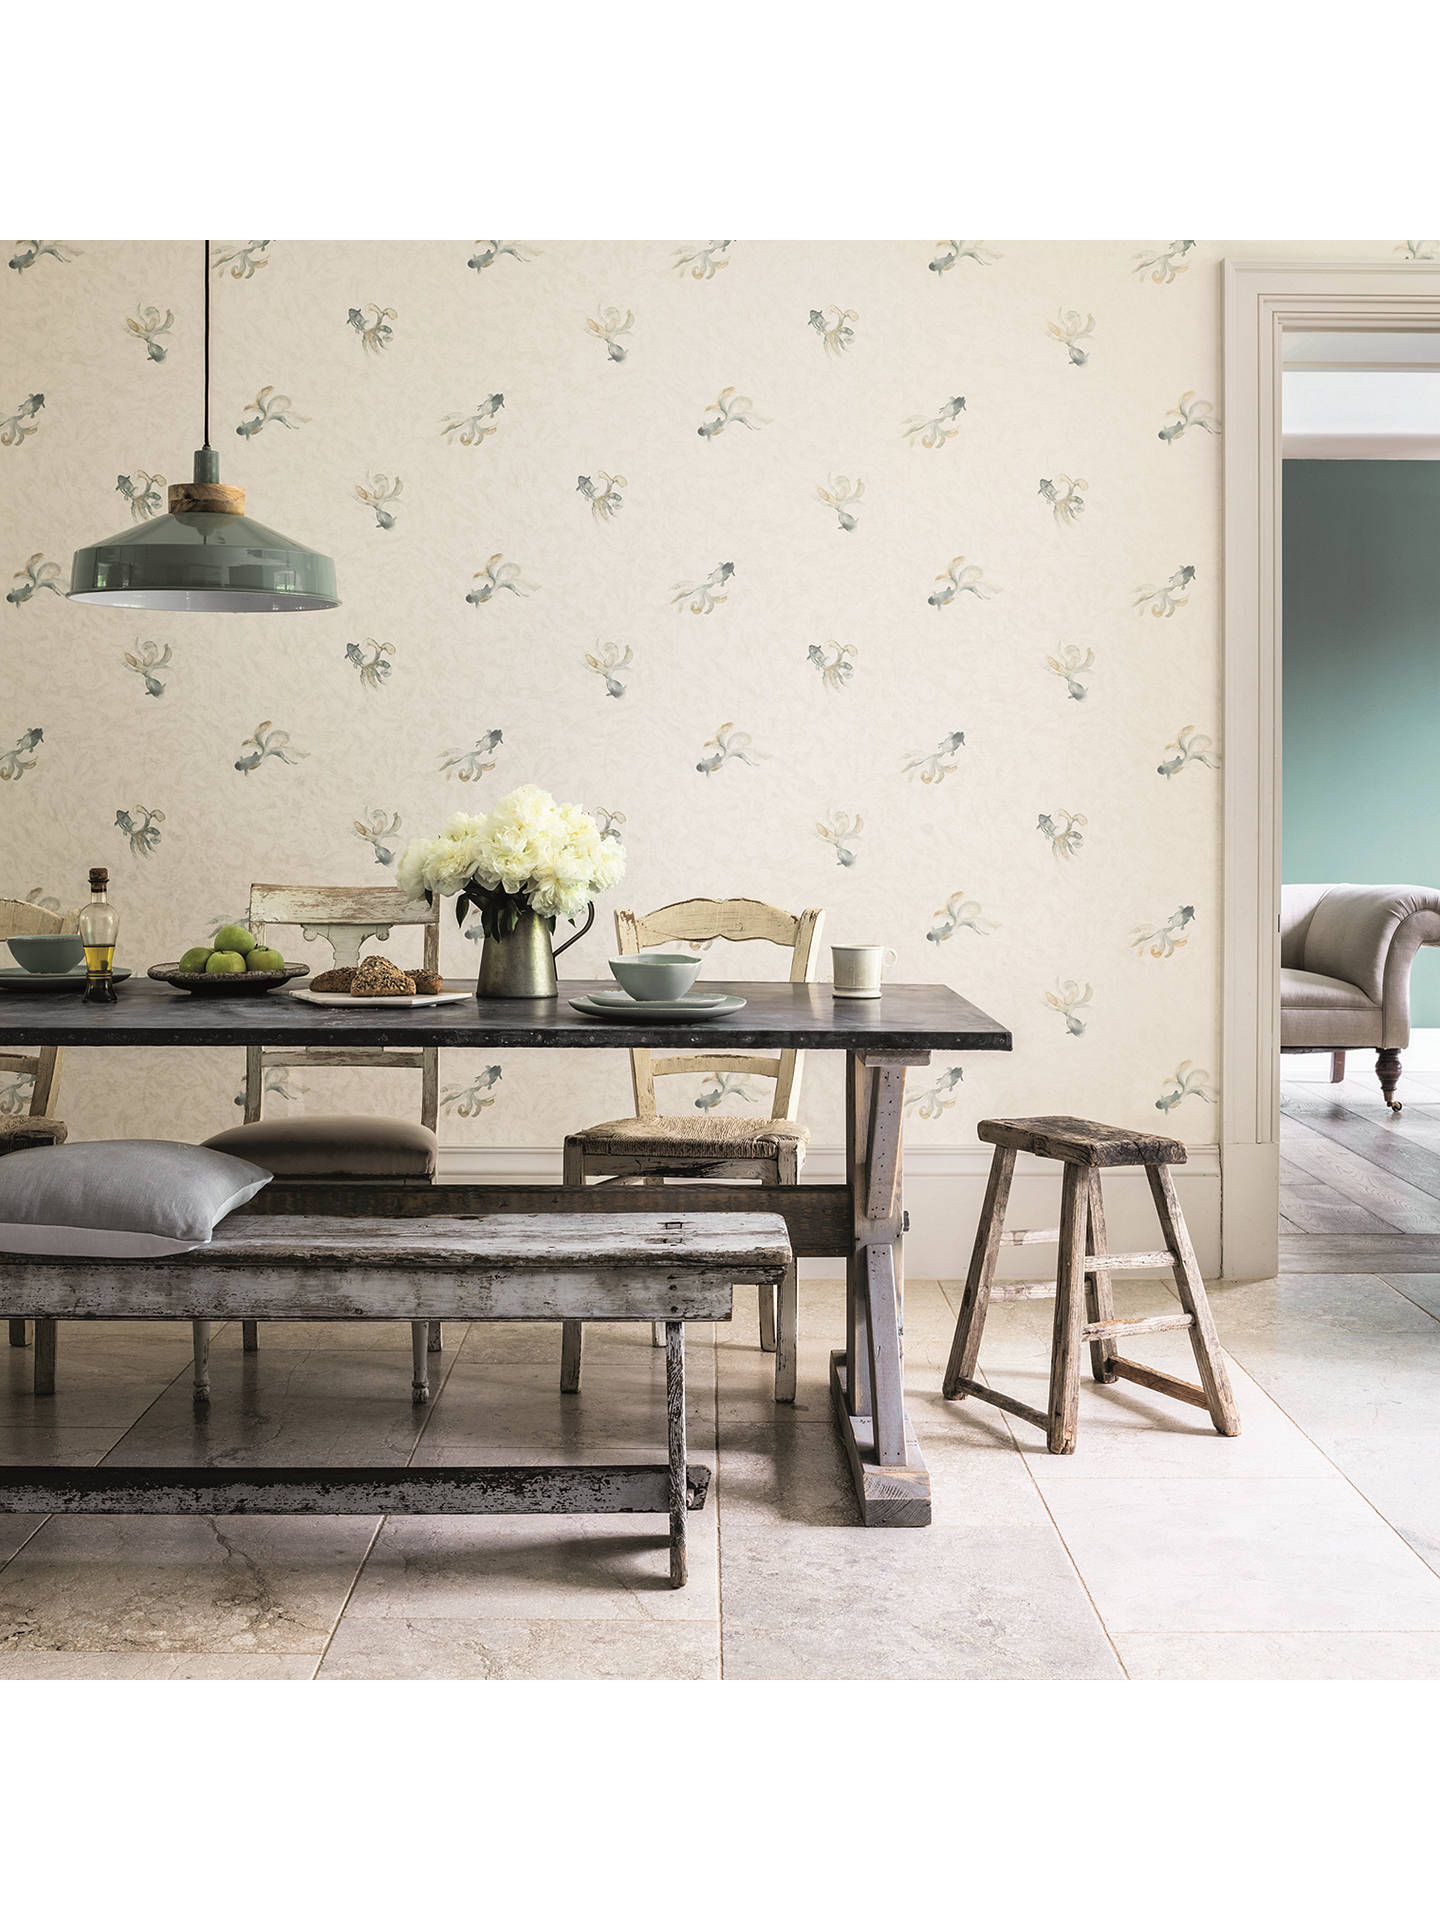 Buy Sanderson Waterperry Fantail Wallpaper, Ivory 216285 Online at johnlewis.com